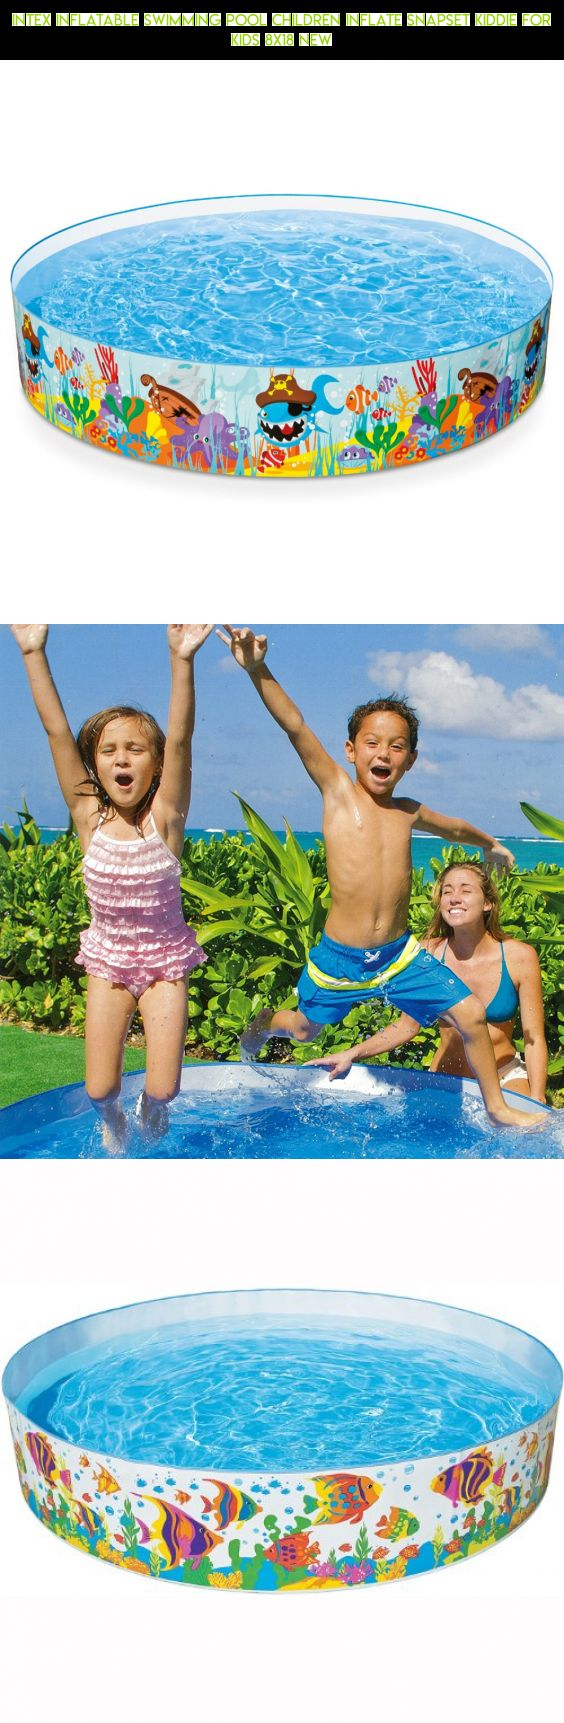 Intex Inflatable Swimming Pool Children Inflate Snapset Kiddie For Kids 8X18 New #shopping #gadgets #plans #kids #for #kit #parts #technology #tech #fpv #pools #drone #racing #camera #products